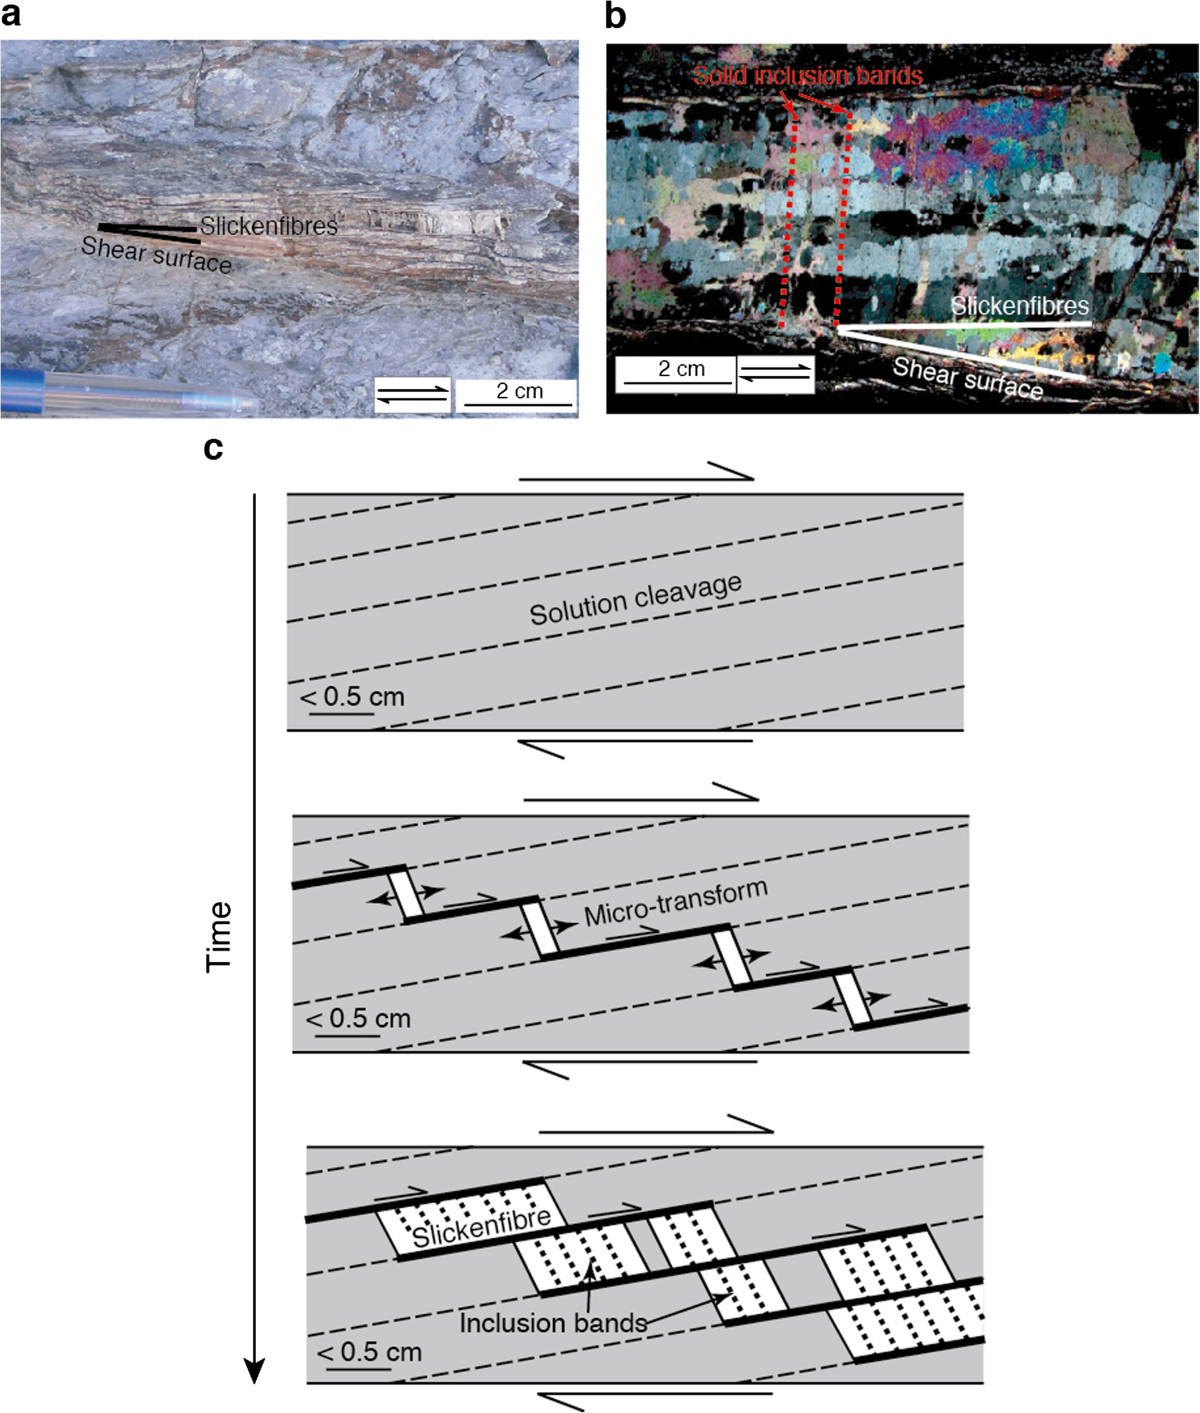 https://static-content.springer.com/image/art%3A10.1186%2F2197-4284-1-7/MediaObjects/40645_2013_Article_7_Fig16_HTML.jpg